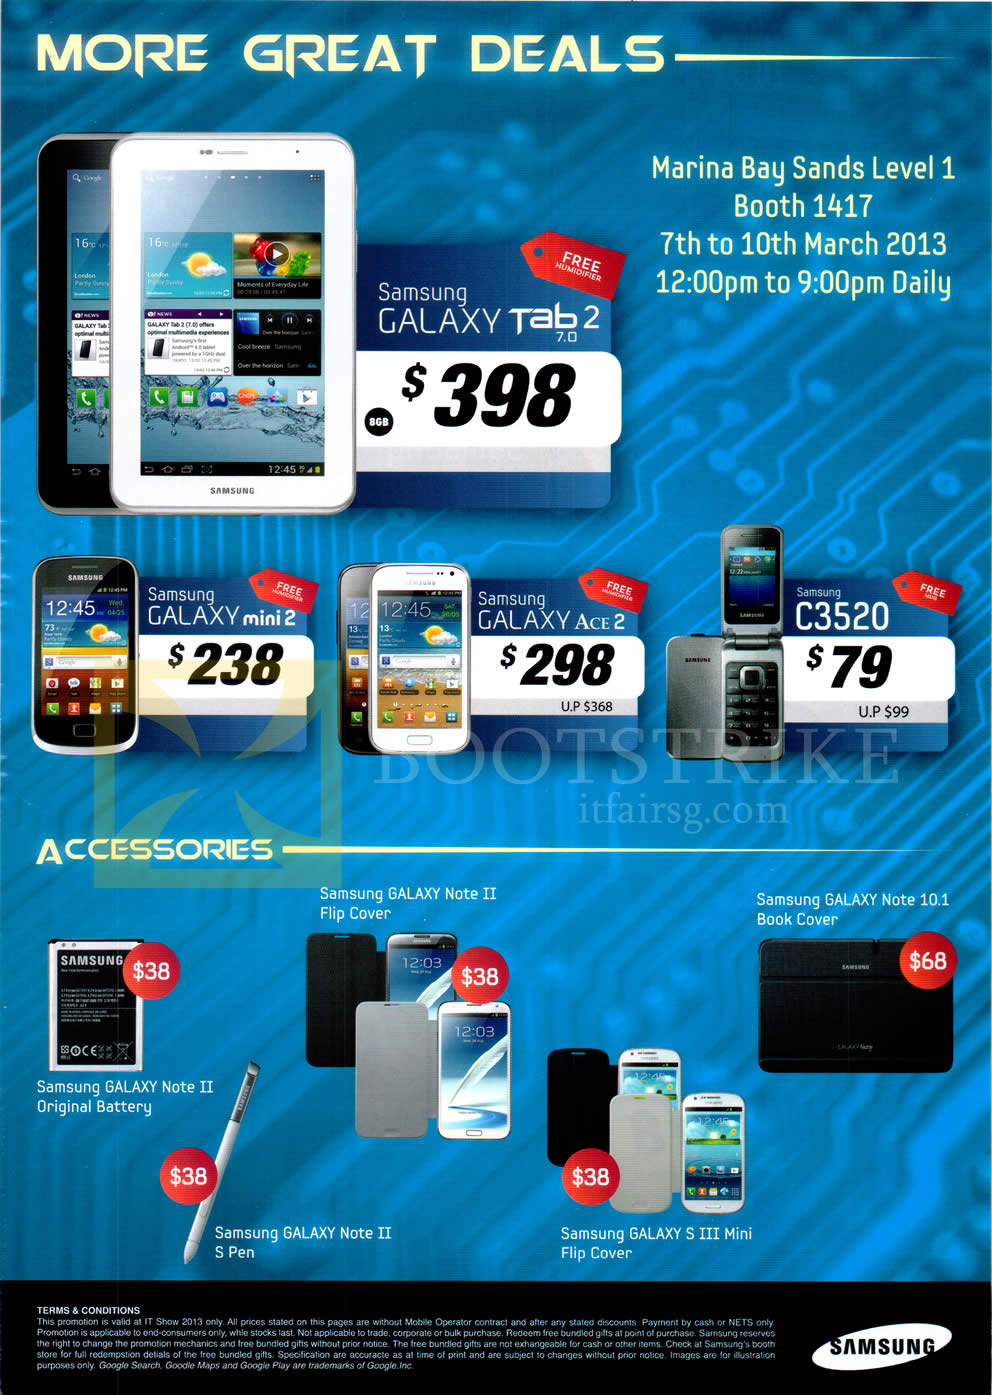 IT SHOW 2013 price list image brochure of Samsung Mobile Phones Galaxy Tab 2 7.0, Galaxy Mini 2, Galaxy Ace 2, C3520, Accessories Cover, Battery, S Pen, Flip Cover